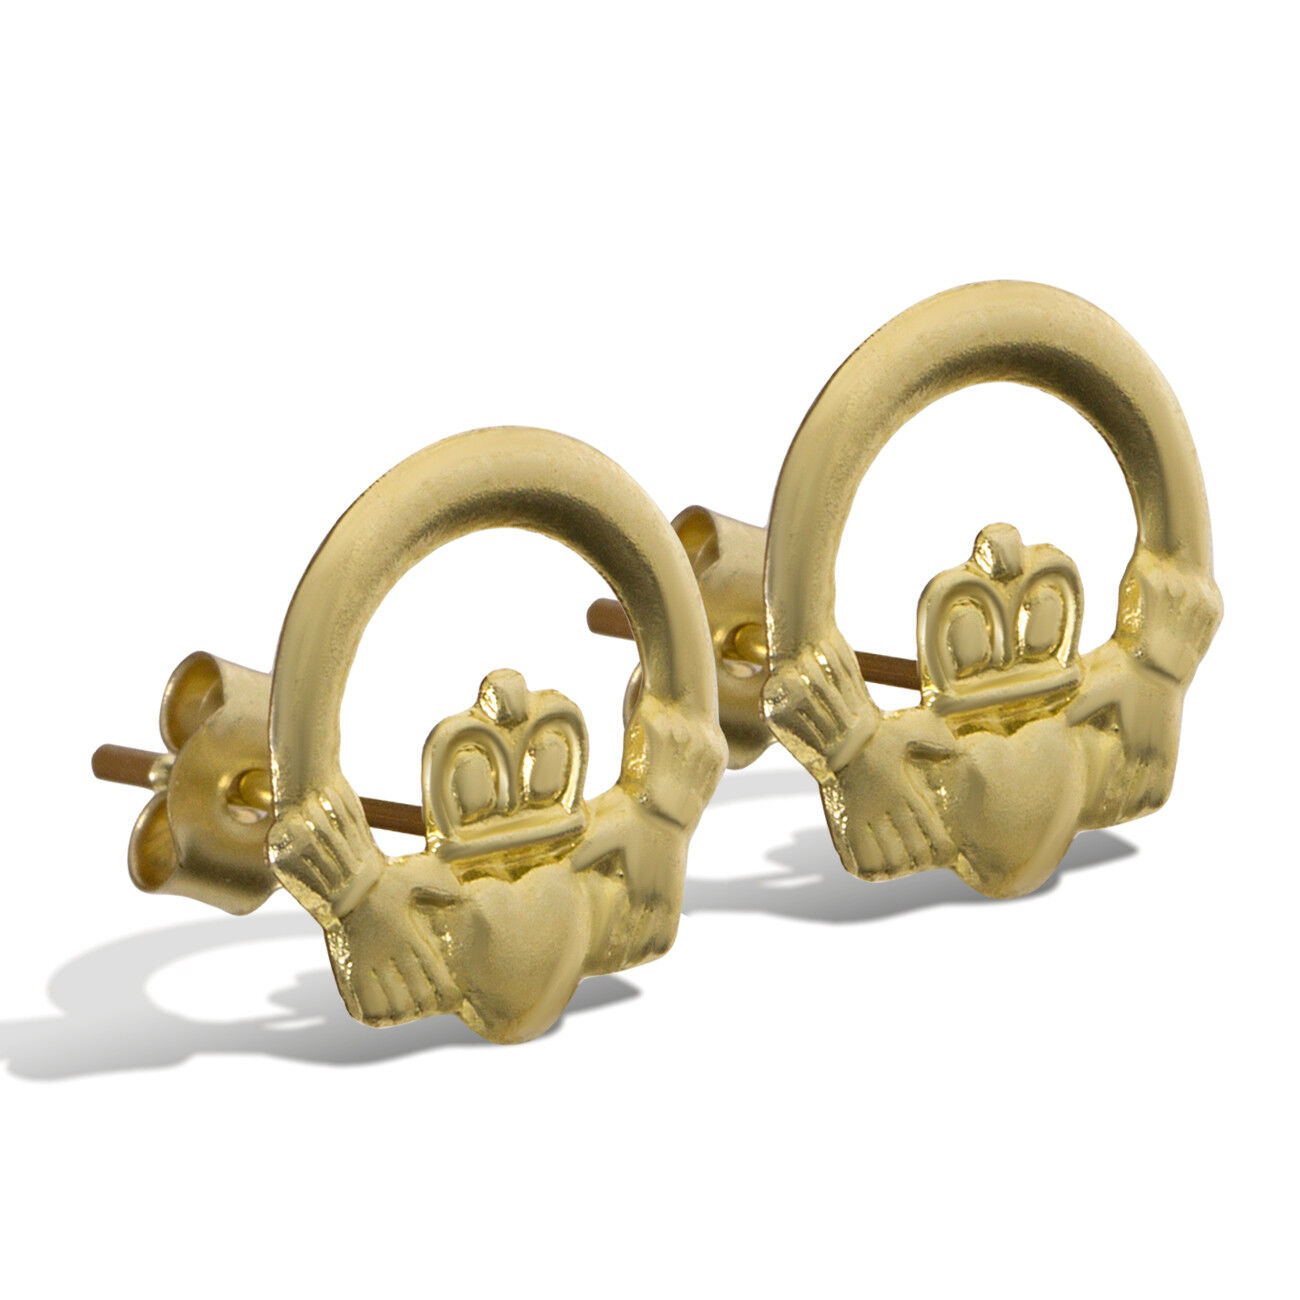 9ct Yellow Gold Irish Celtic Claddagh Ring for Children 9ct Yellow Gold Women Available in 3 Styles /& in Sizes A-Q Maids